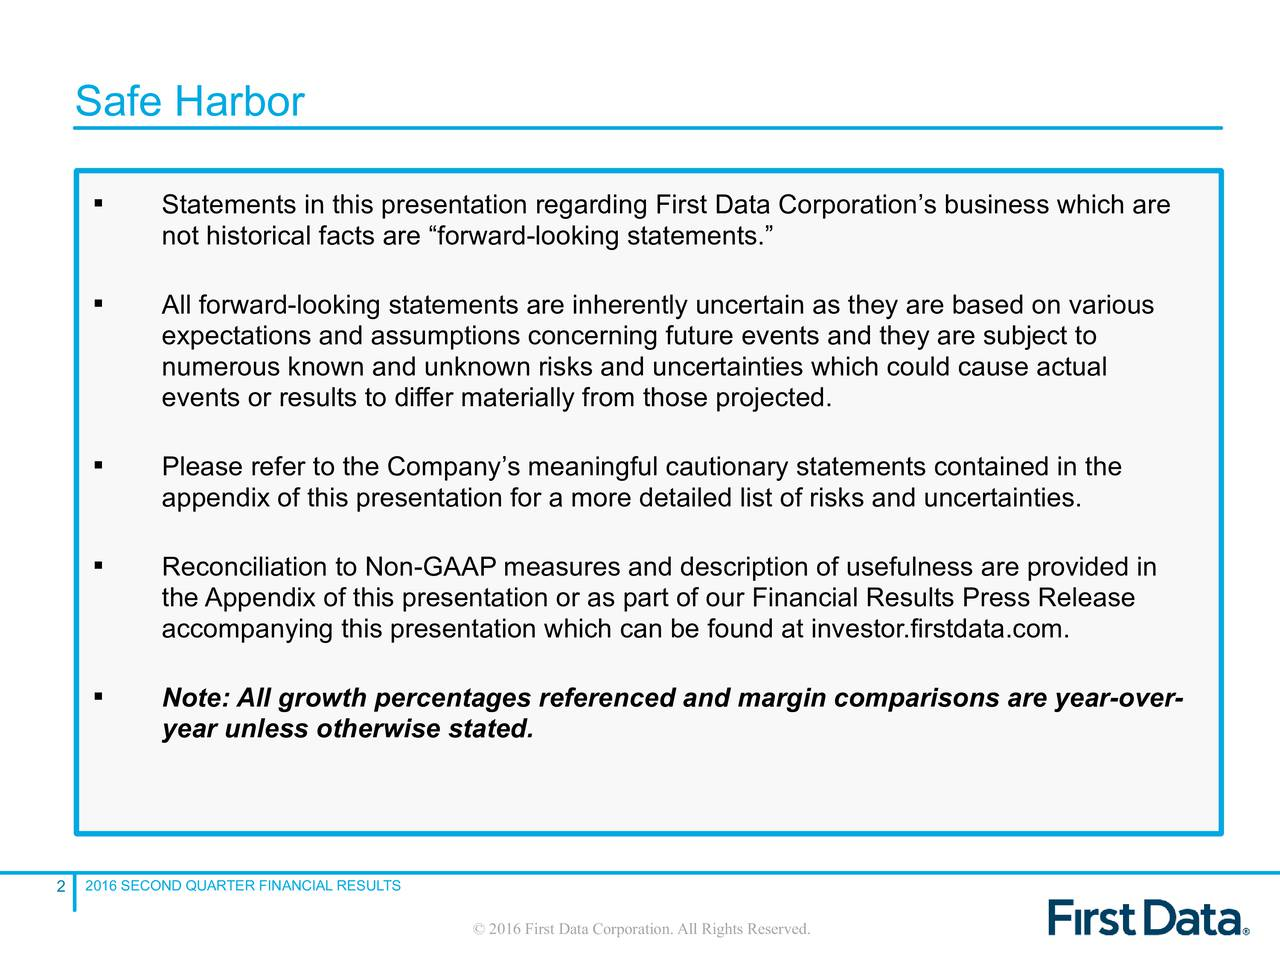 Statements in this presentation regarding First Data Corporations business which are not historical facts are forward-looking statements. All forward-looking statements are inherently uncertain as they are based on various expectations and assumptions concerning future events and they are subject to numerous known and unknown risks and uncertainties which could cause actual events or results to differ materially from those projected. Please refer to the Companys meaningful cautionary statements contained in the appendix of this presentation for a more detailed list of risks and uncertainties. Reconciliation to Non-GAAP measures and description of usefulness are provided in the Appendix of this presentation or as part of our Financial Results Press Release accompanying this presentation which can be found at investor.firstdata.com. Note: All growth percentages referenced and margin comparisons are year-over- year unless otherwise stated. 2016 SECOND QUARTER FINANCIAL RESULTS 2 2016 First Data Corporation.All Rights Reserved.